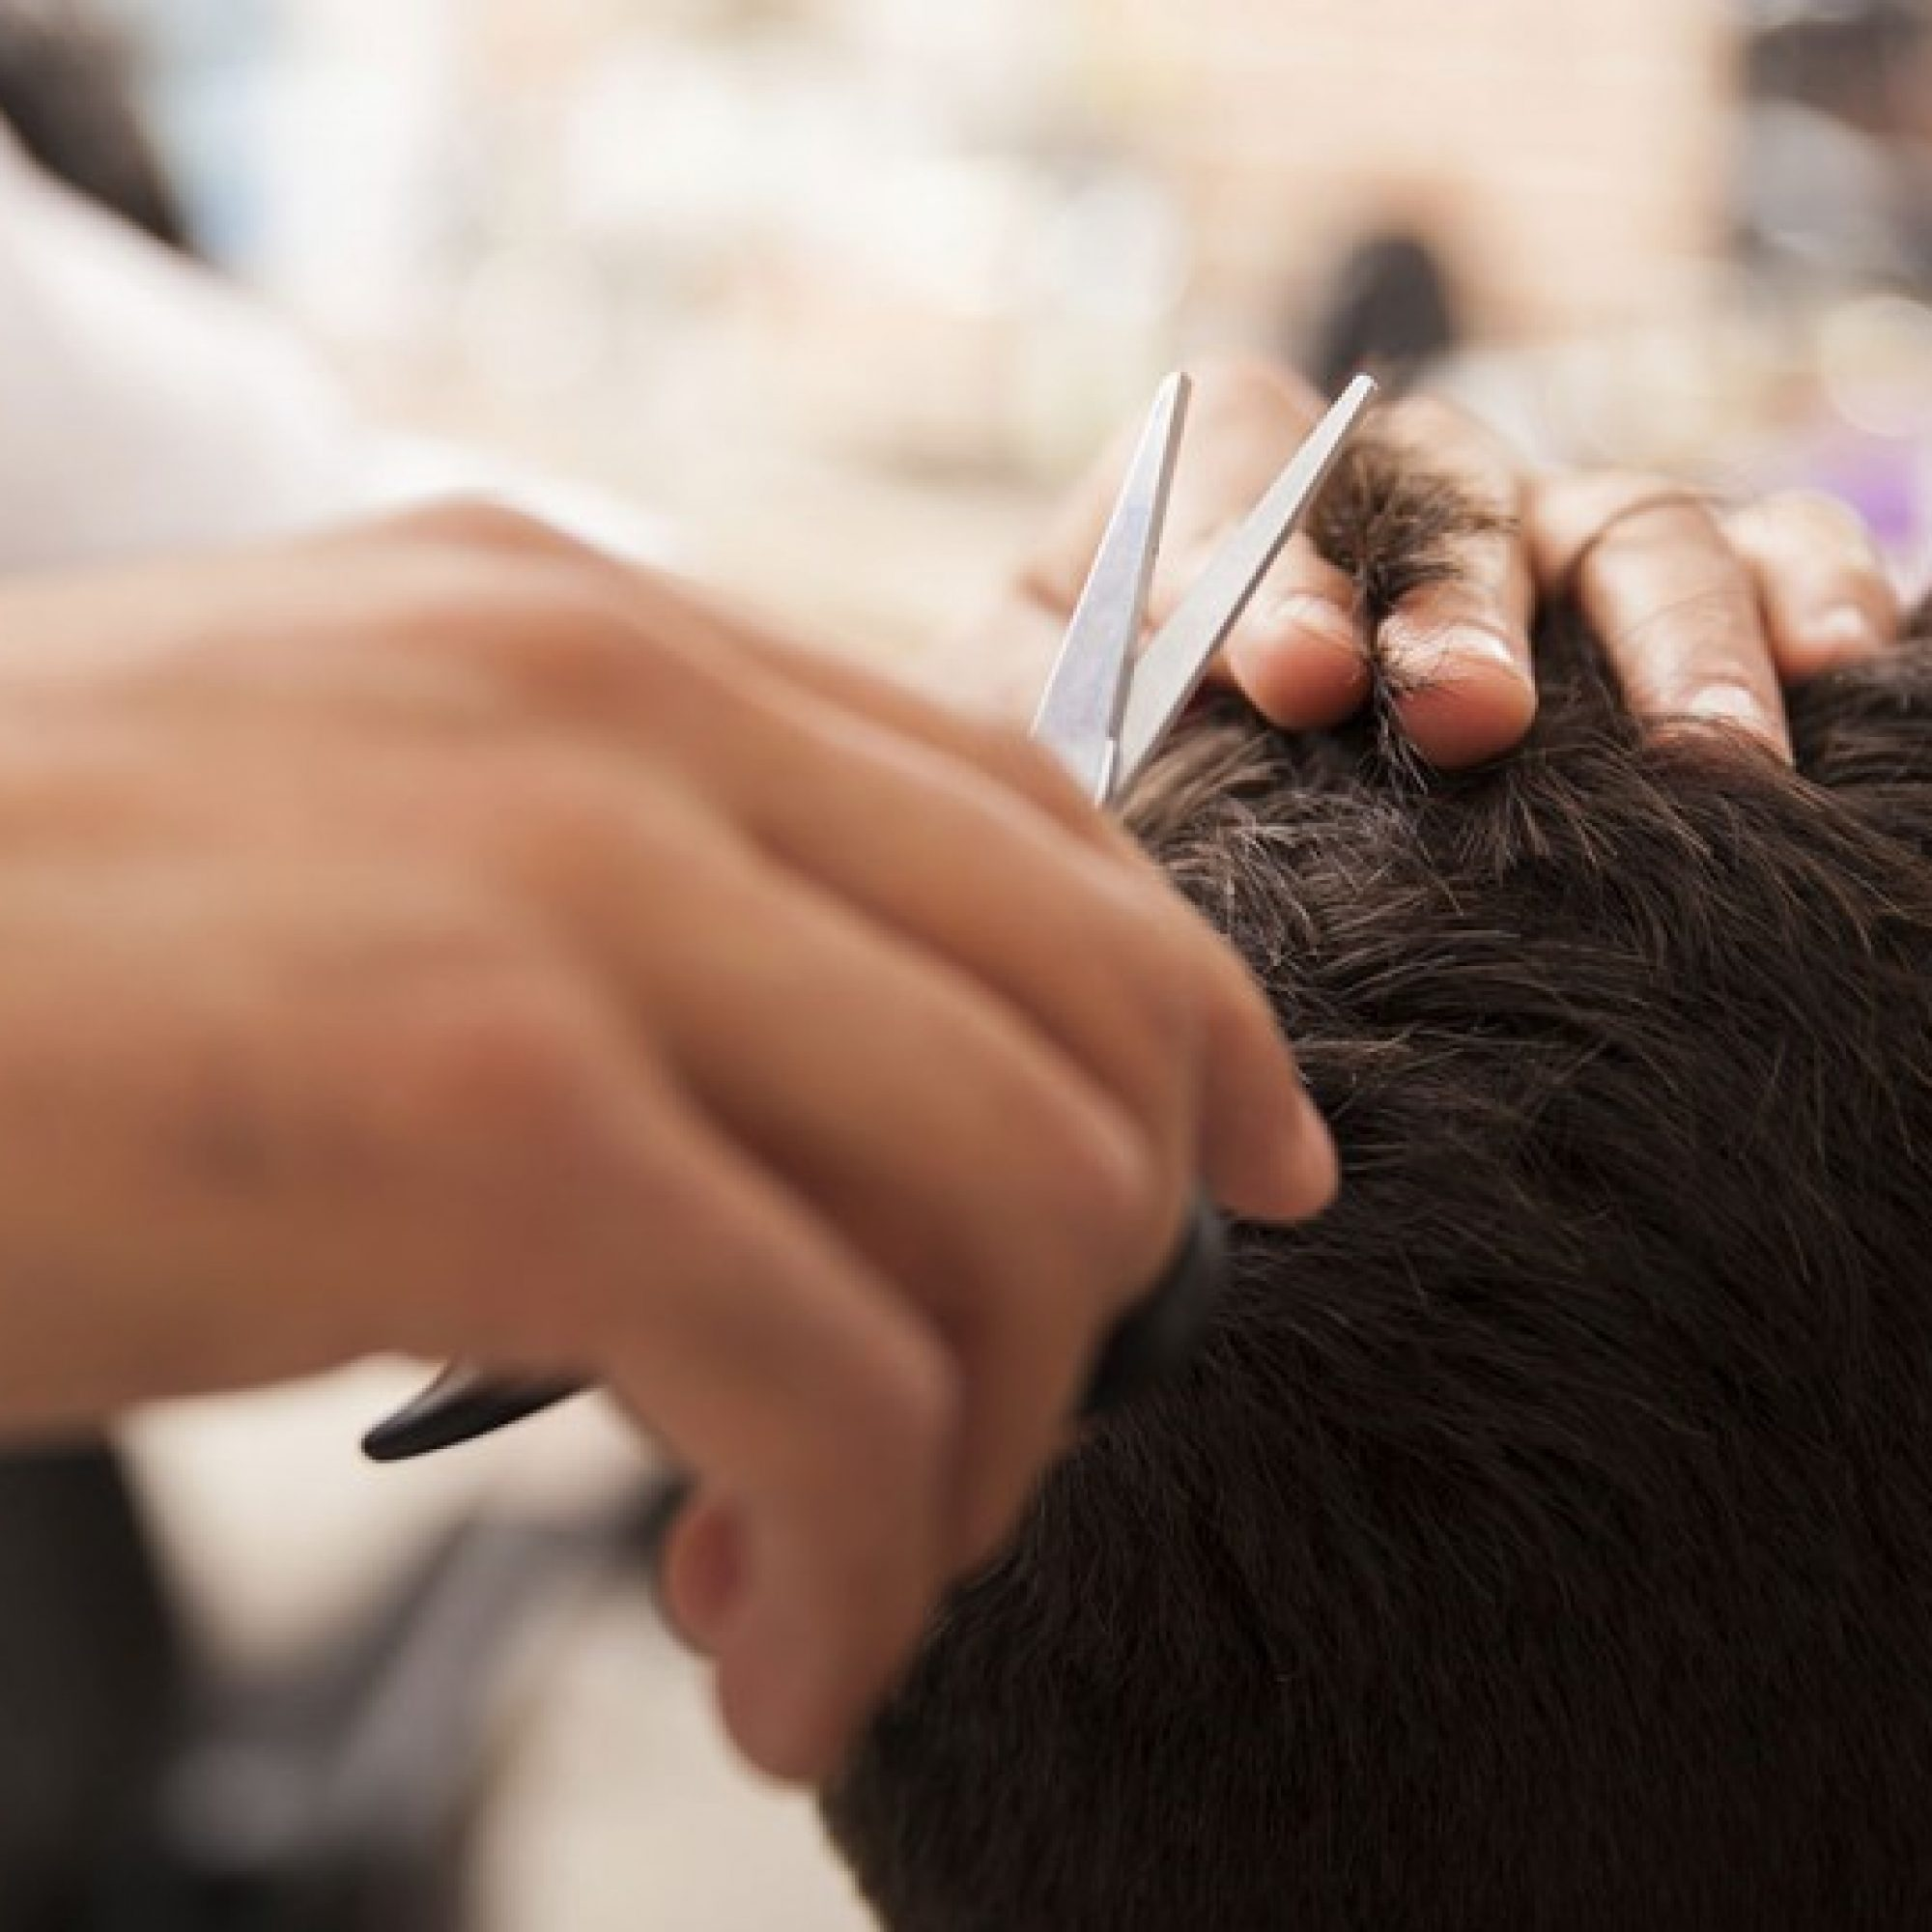 cleancut-hair-care-tips